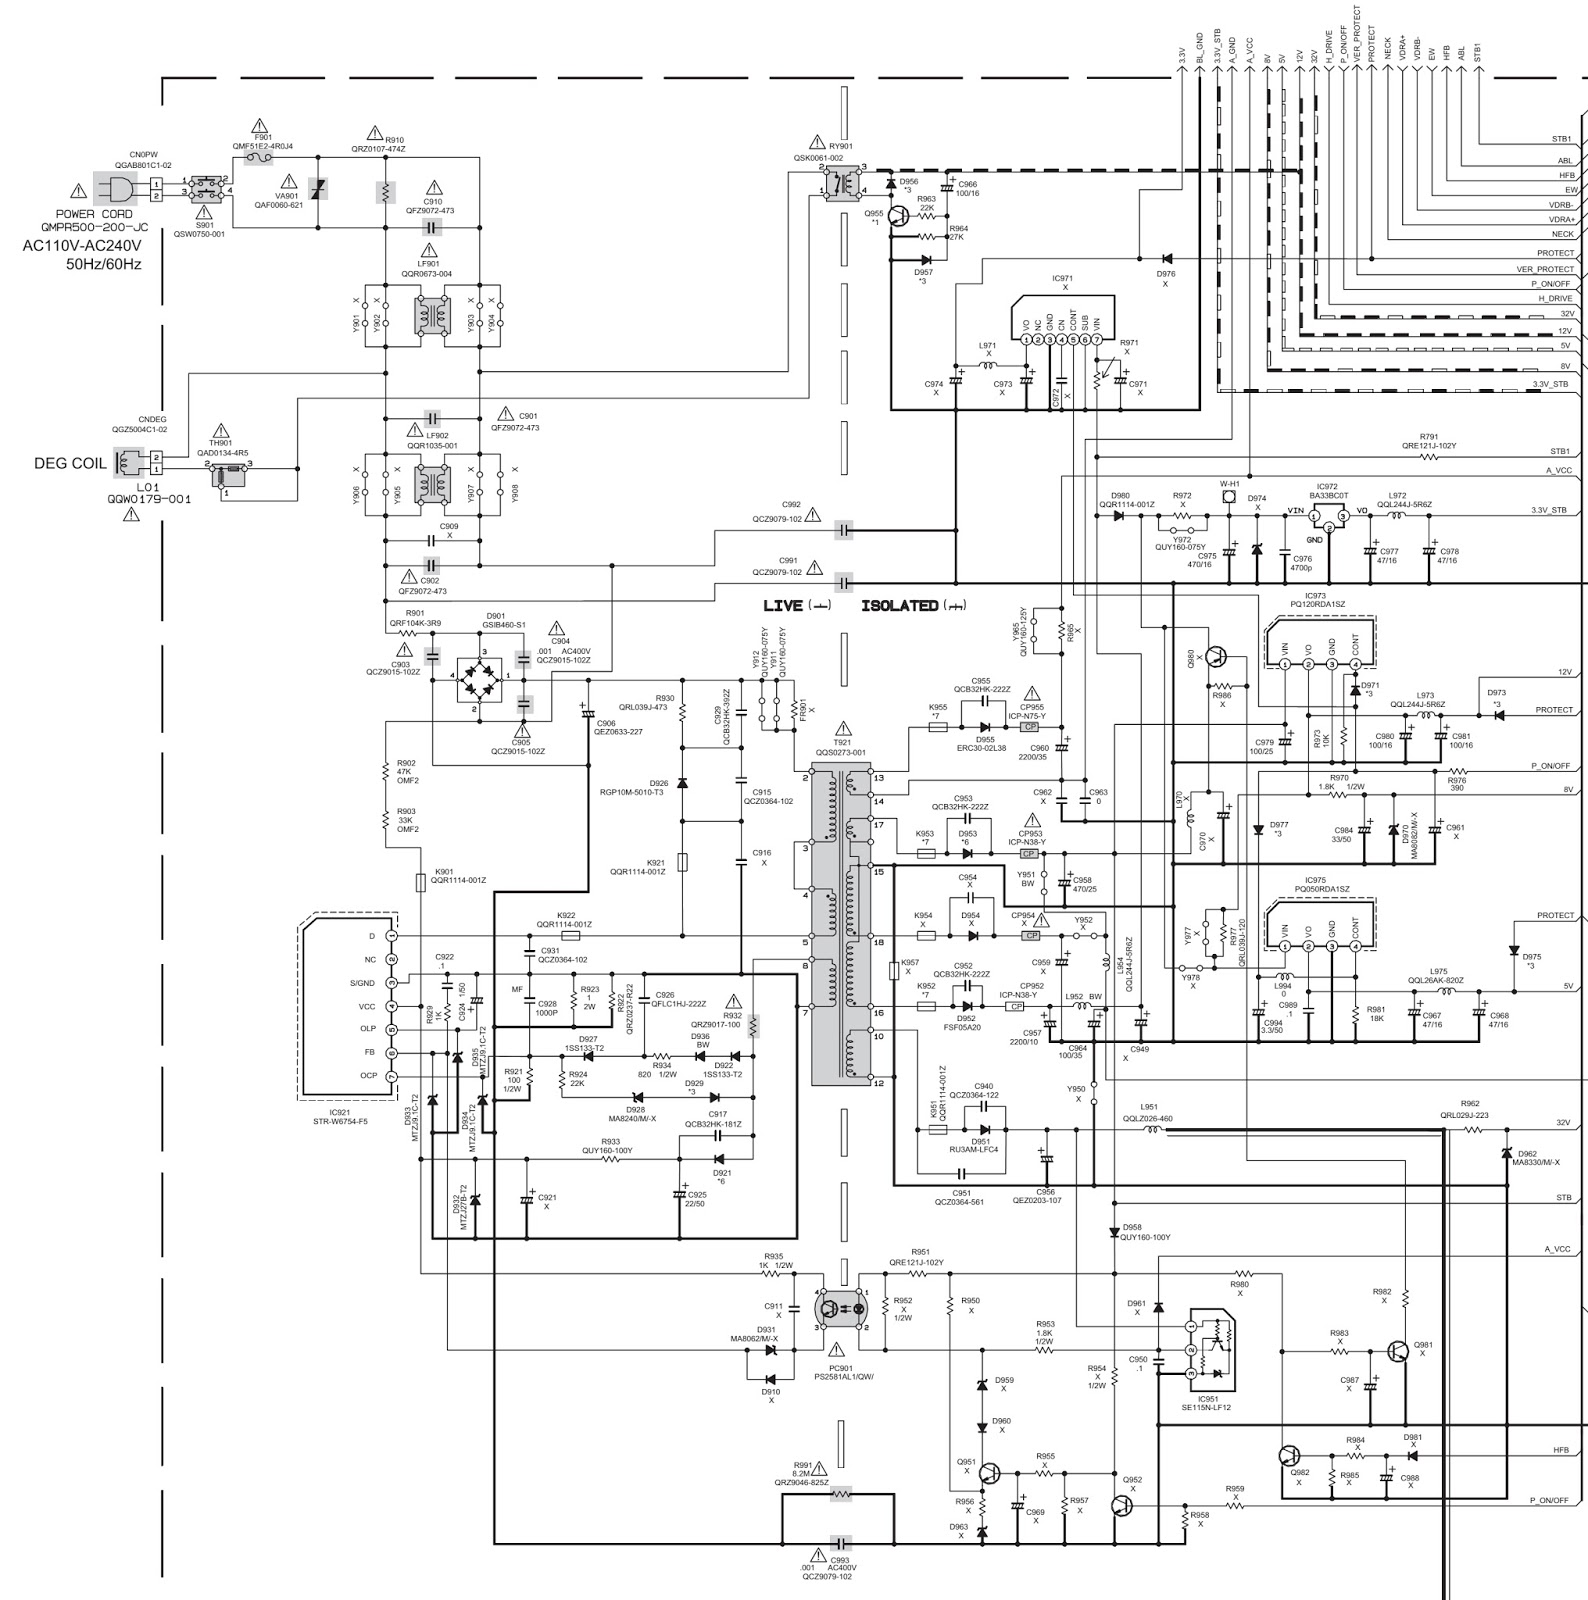 jvc av-17v214 - tv - power supply  smps  - schematic  circuit diagram